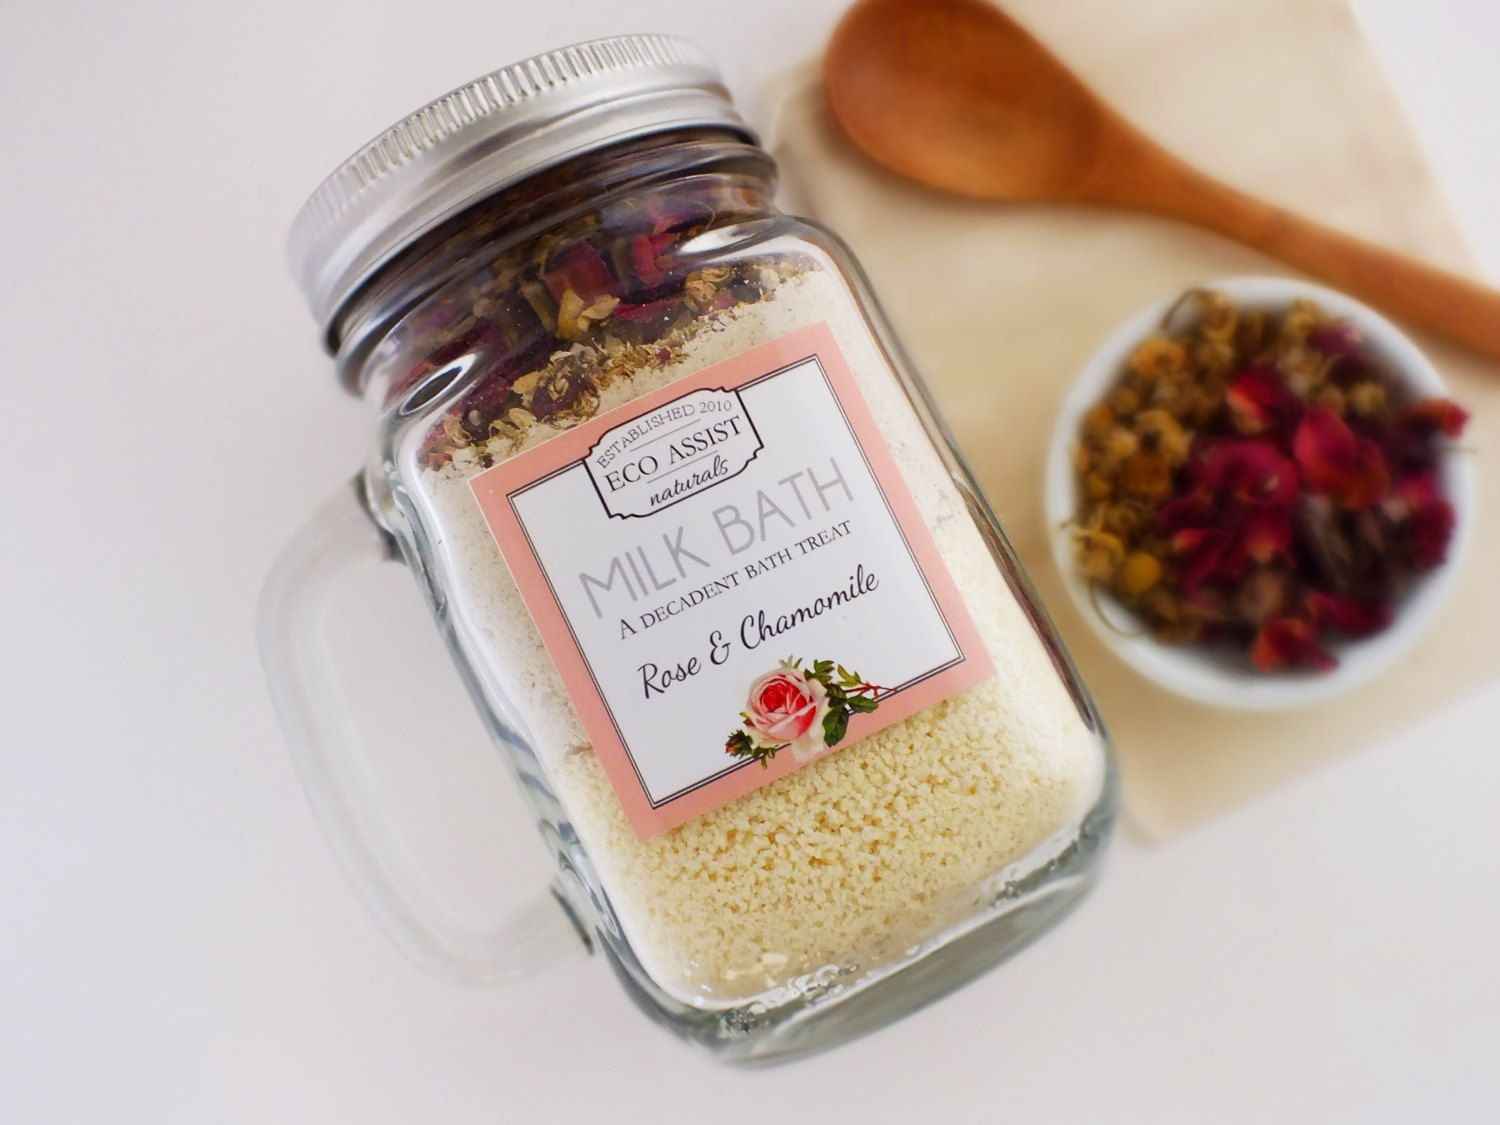 Milk bath organic valentines day gifts for her mothers day